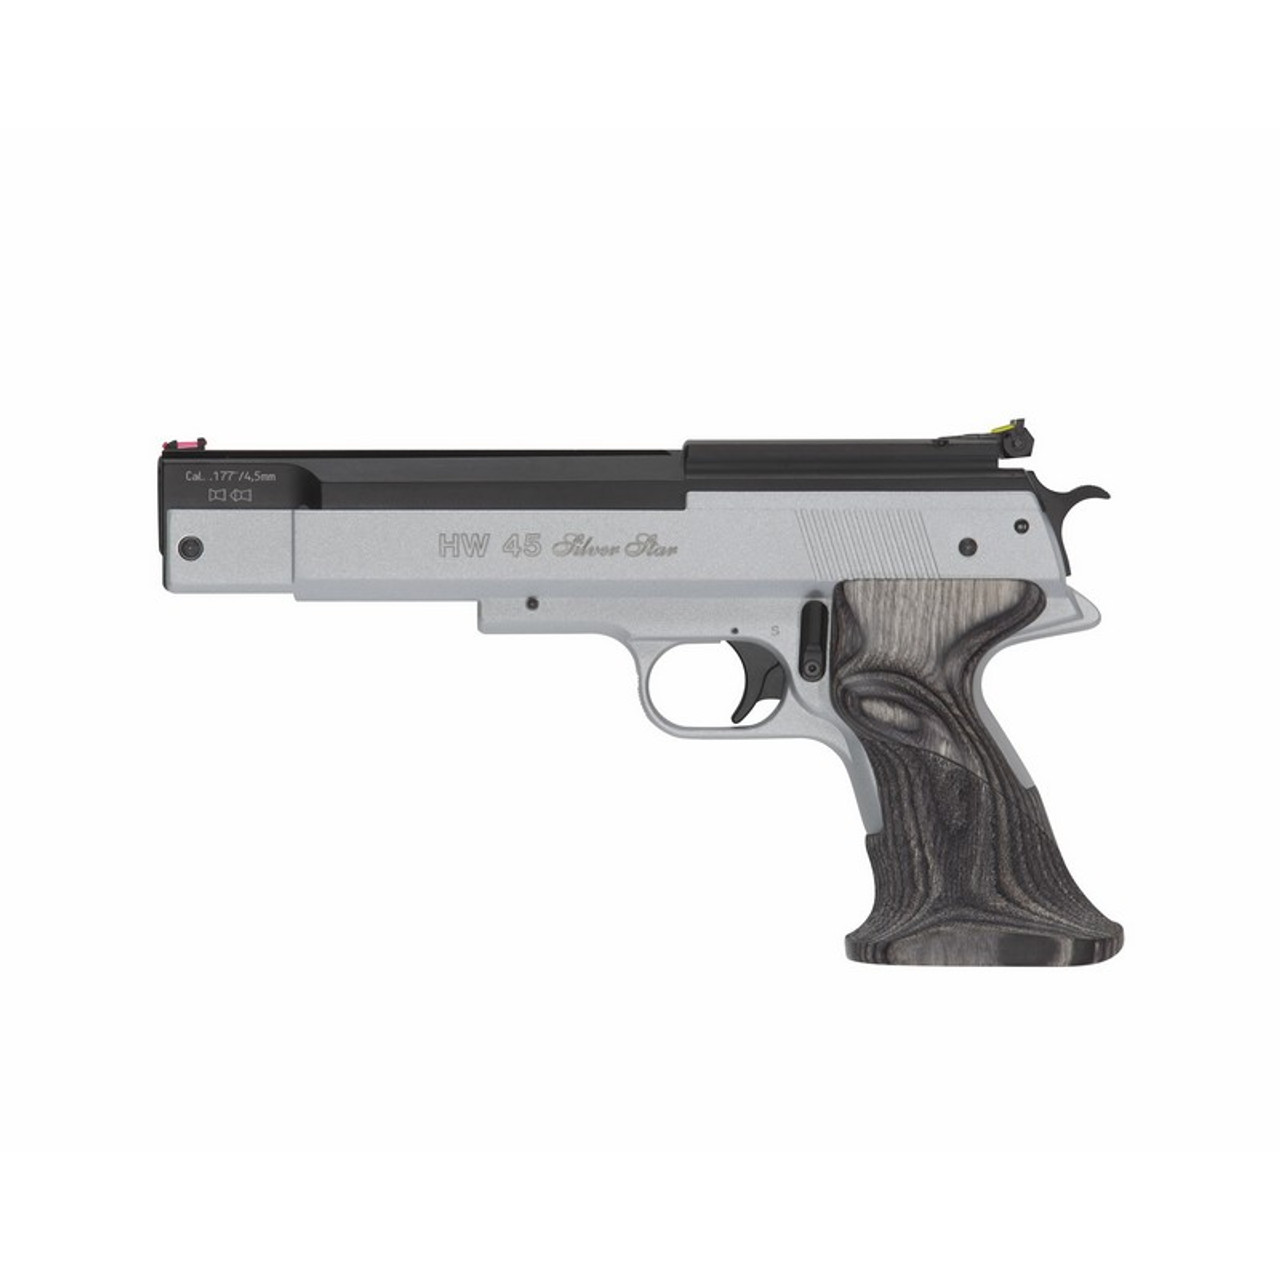 Weihrauch HW45 Silver Star, buy at cheap rates from Bradford Stalker